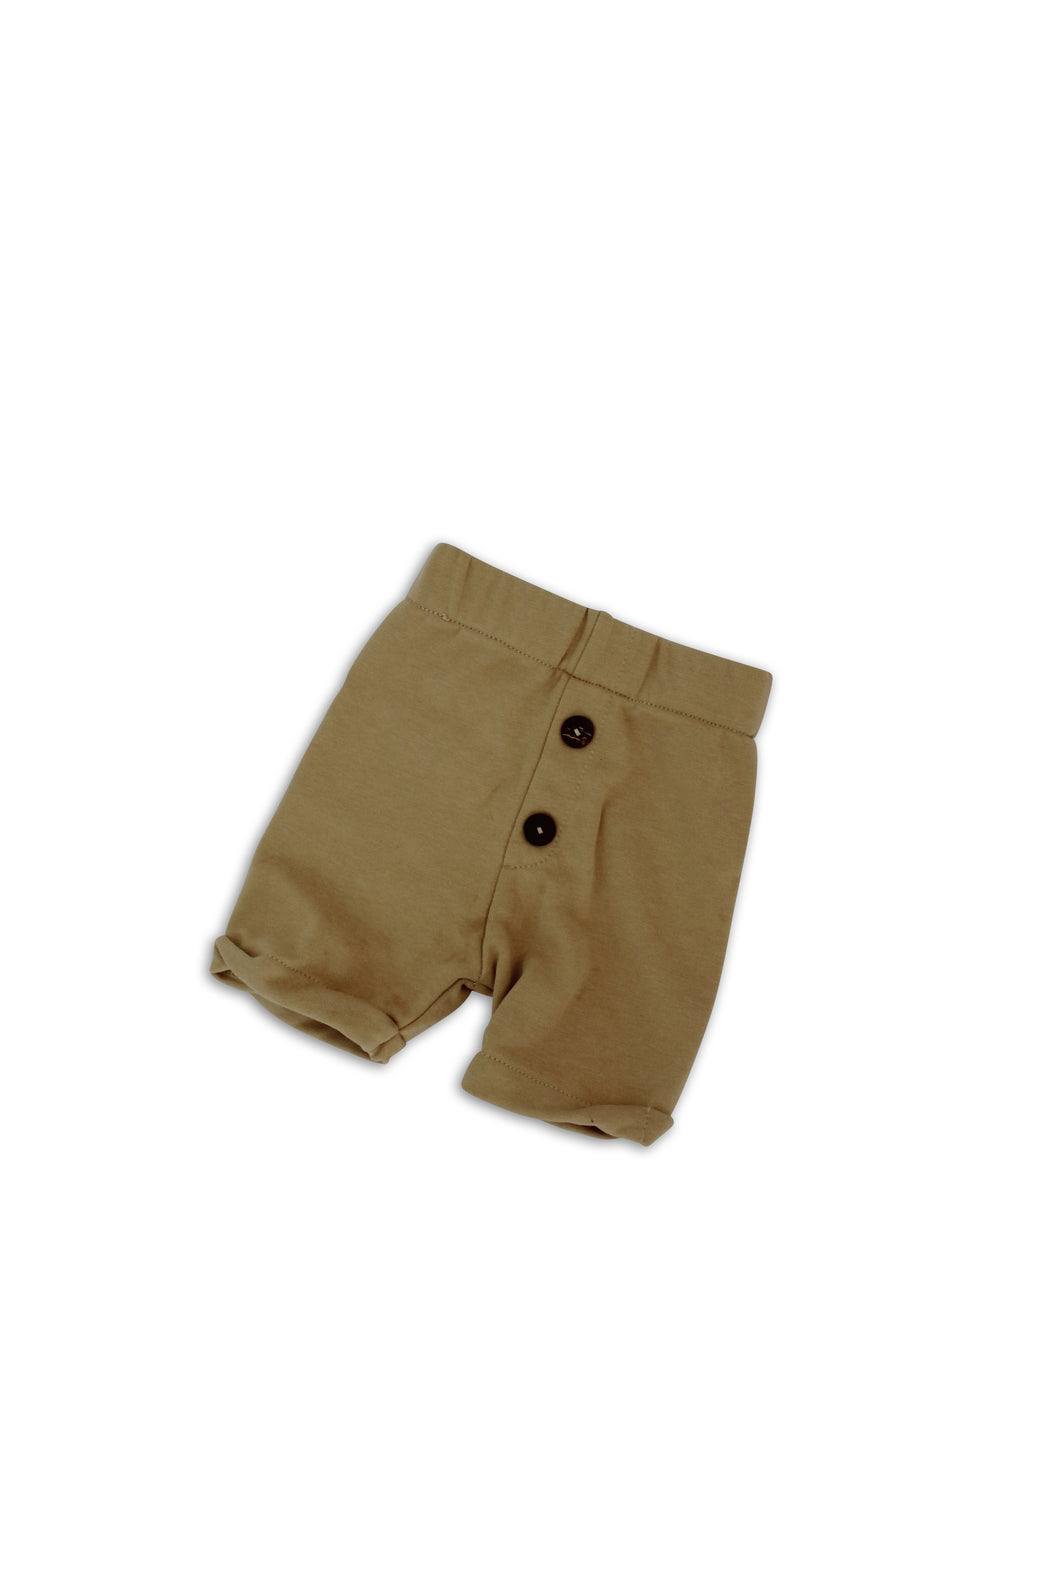 Little Indahs Zimi Bike Shorts